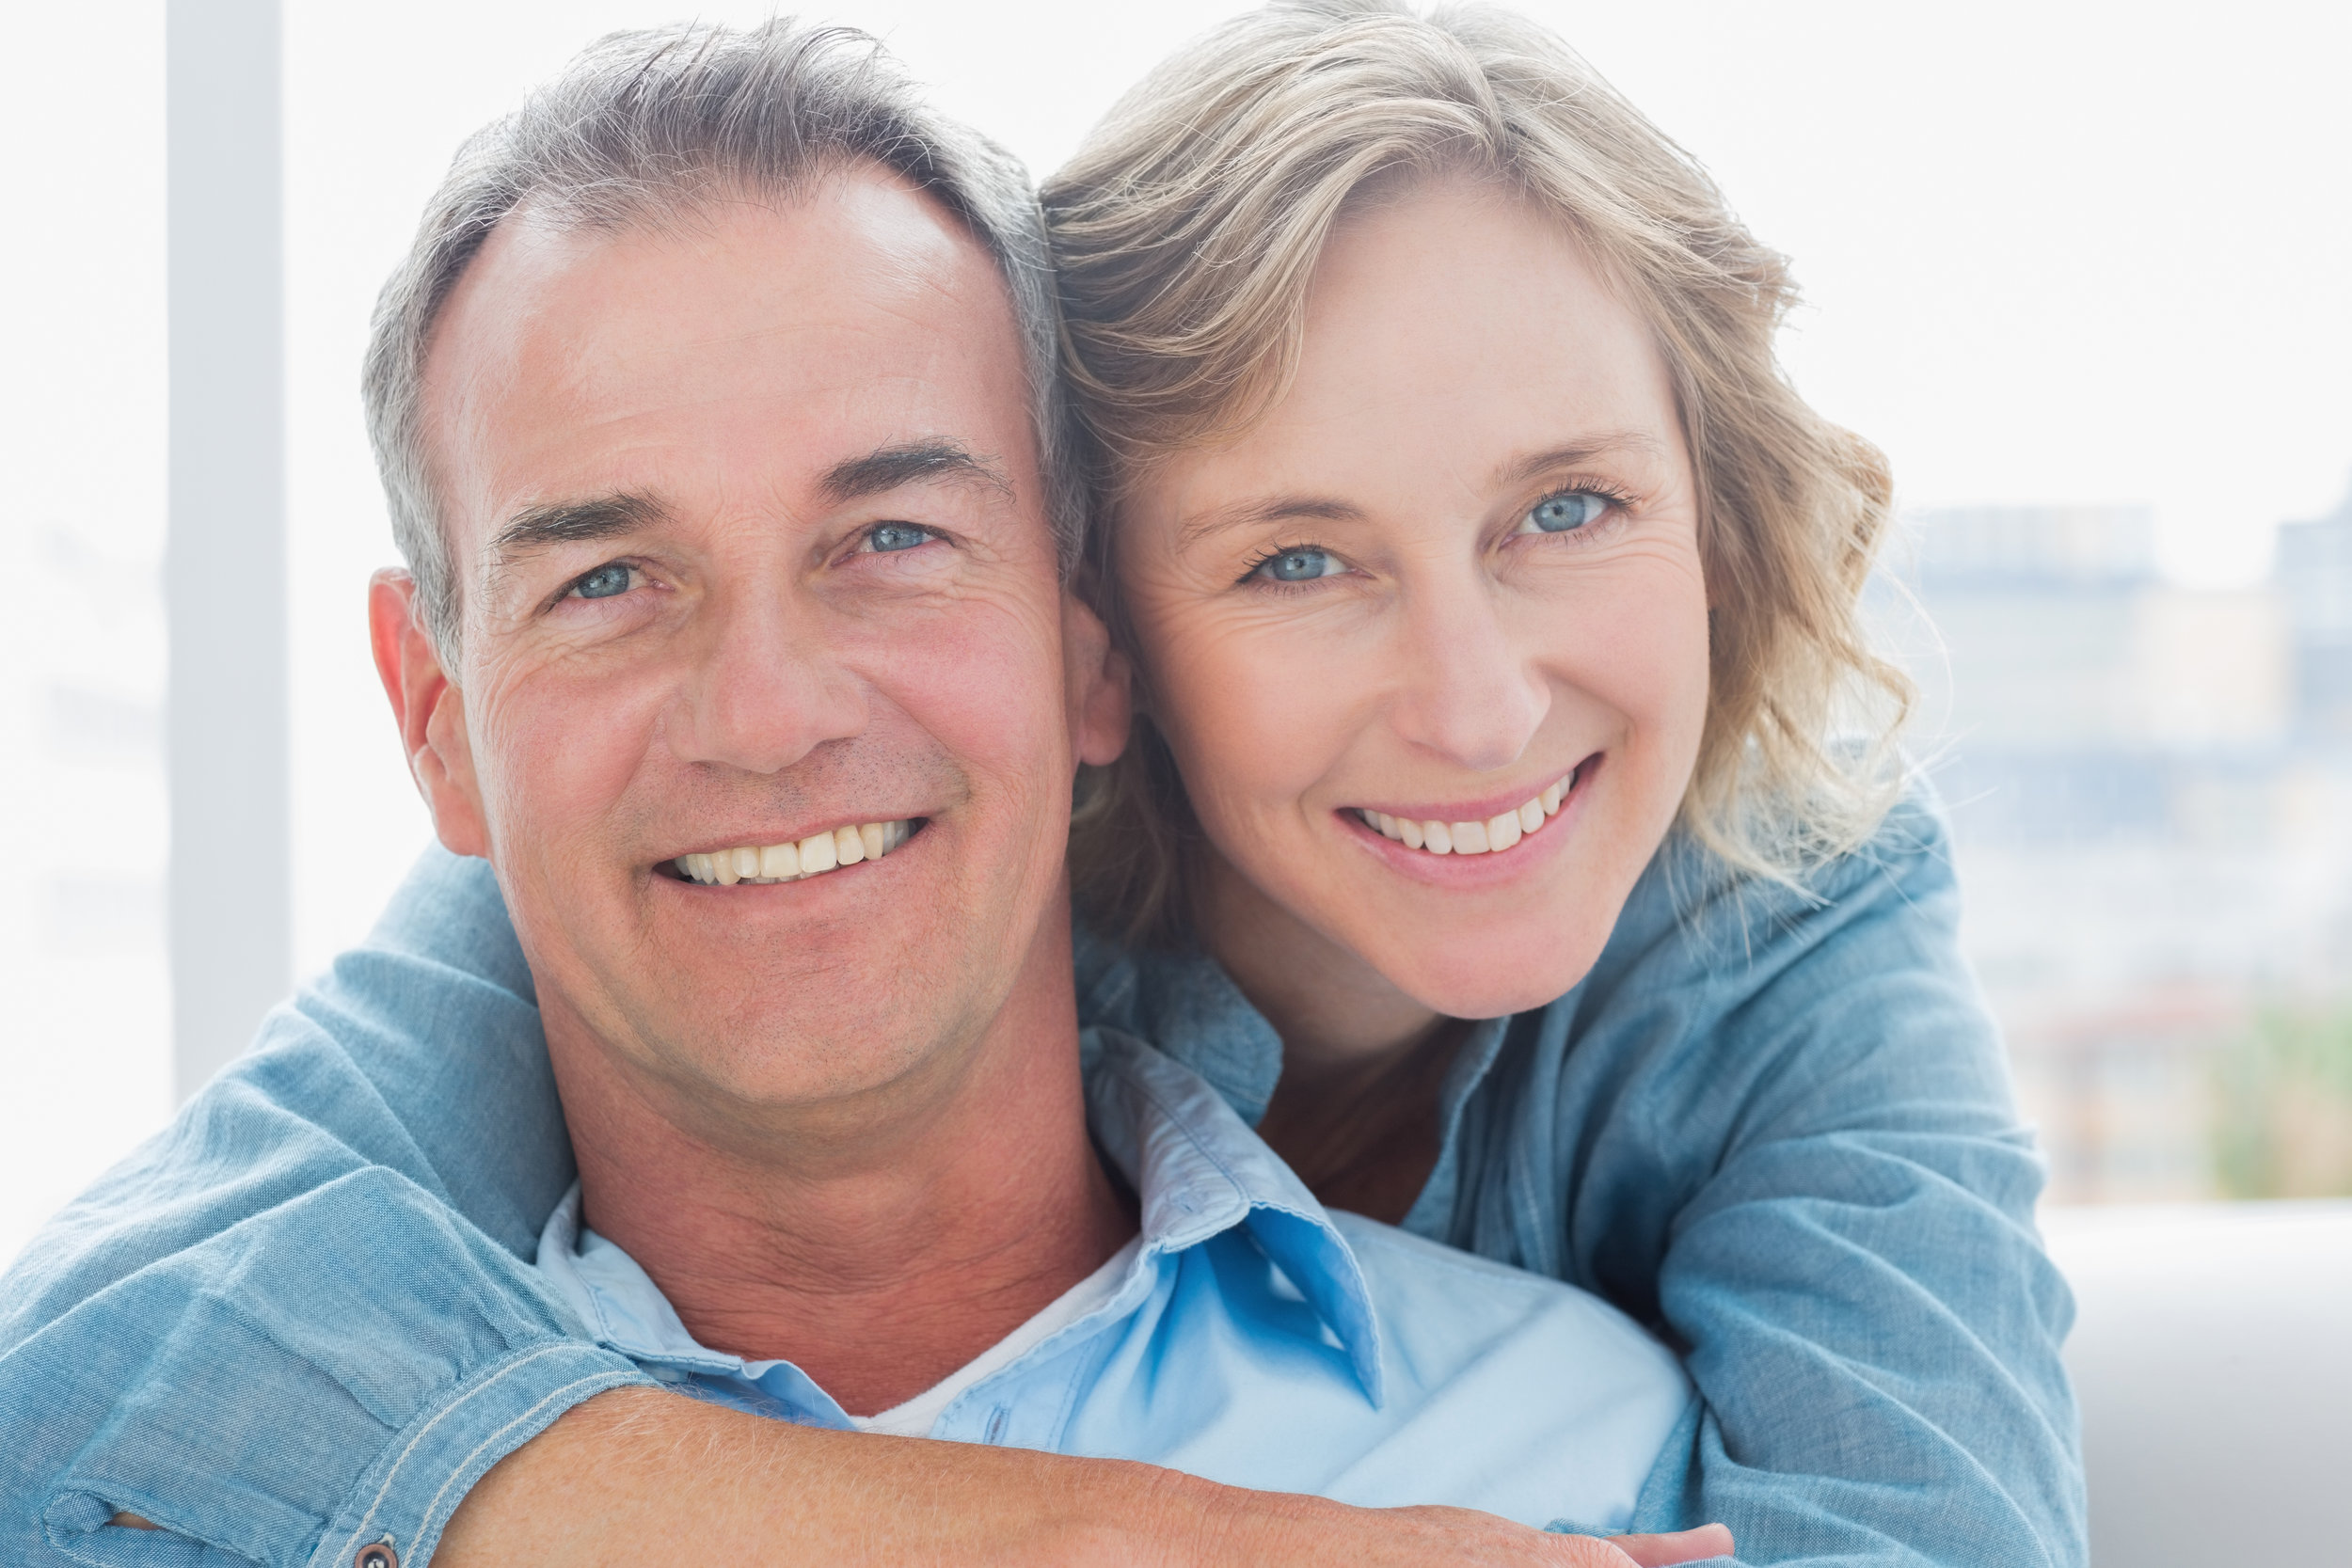 """How many times have you heard someone say ""We love our periodontist""?  My husband and I say this to anyone who asks us about our dentist.  We both have been going to Dr. Pylant for over twenty years.  He has saved our teeth!""    - J. and M. Lufkin"